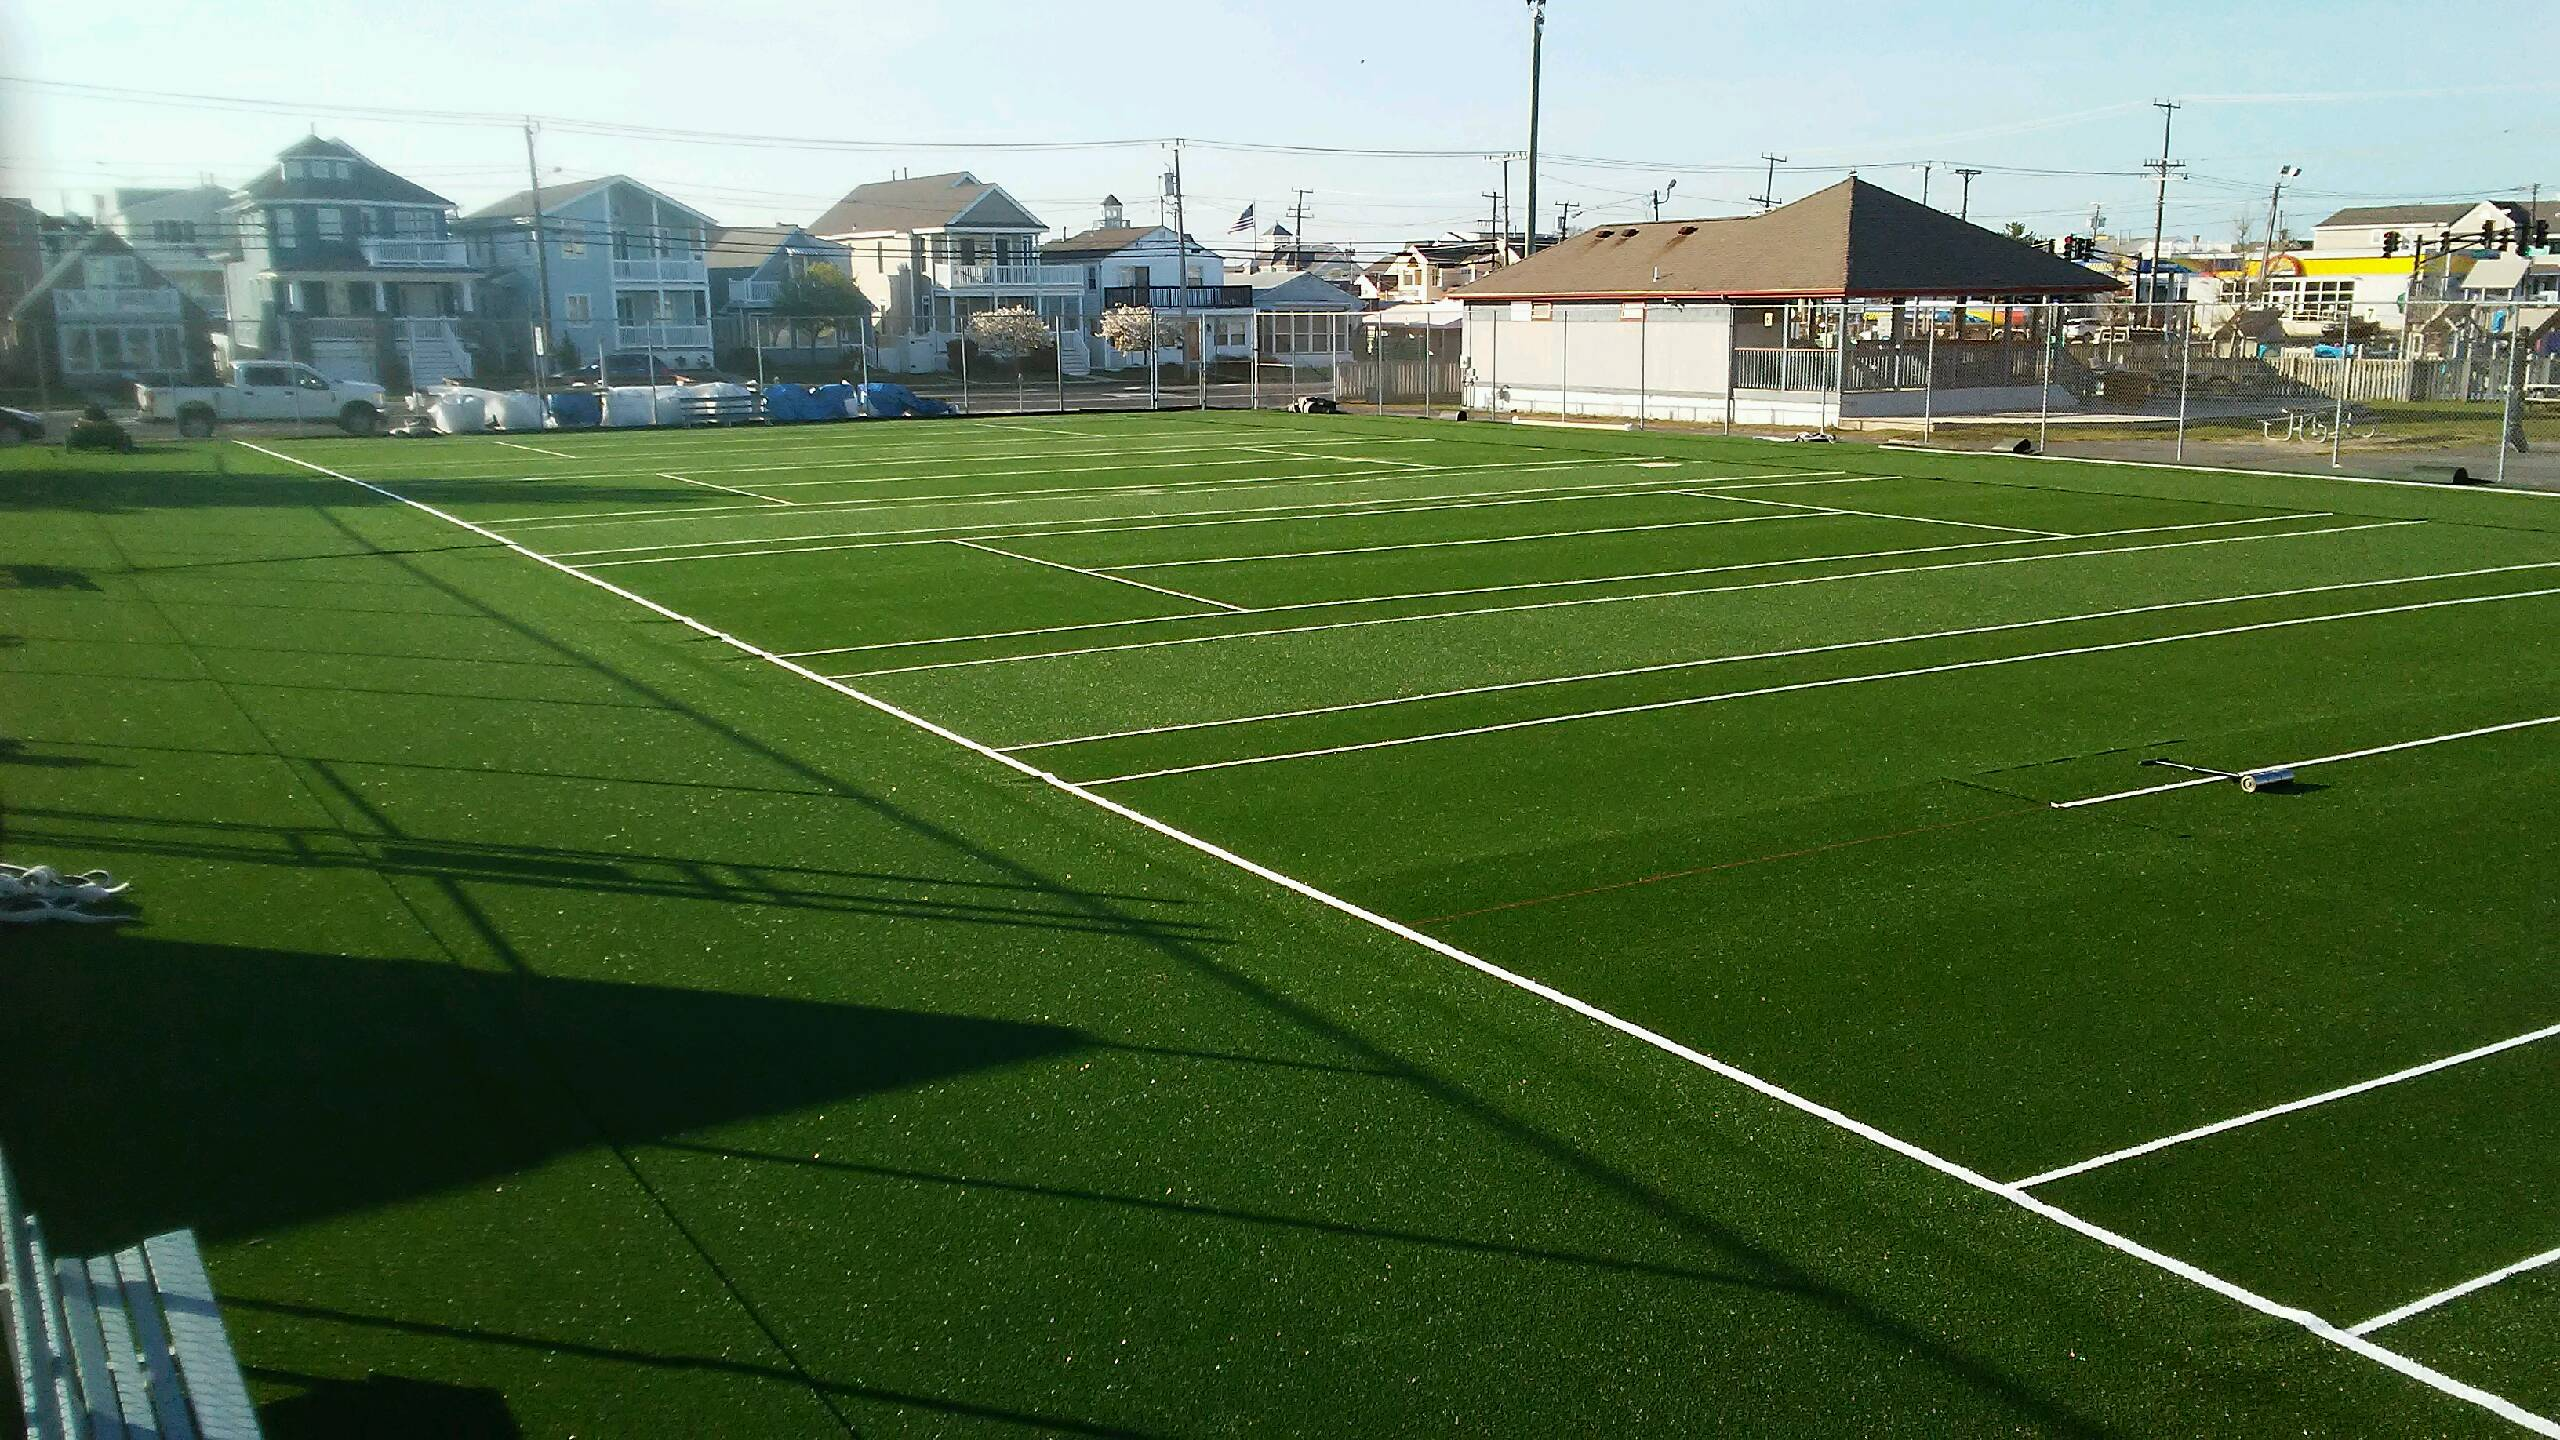 commercial tennis court complex with artificial turf